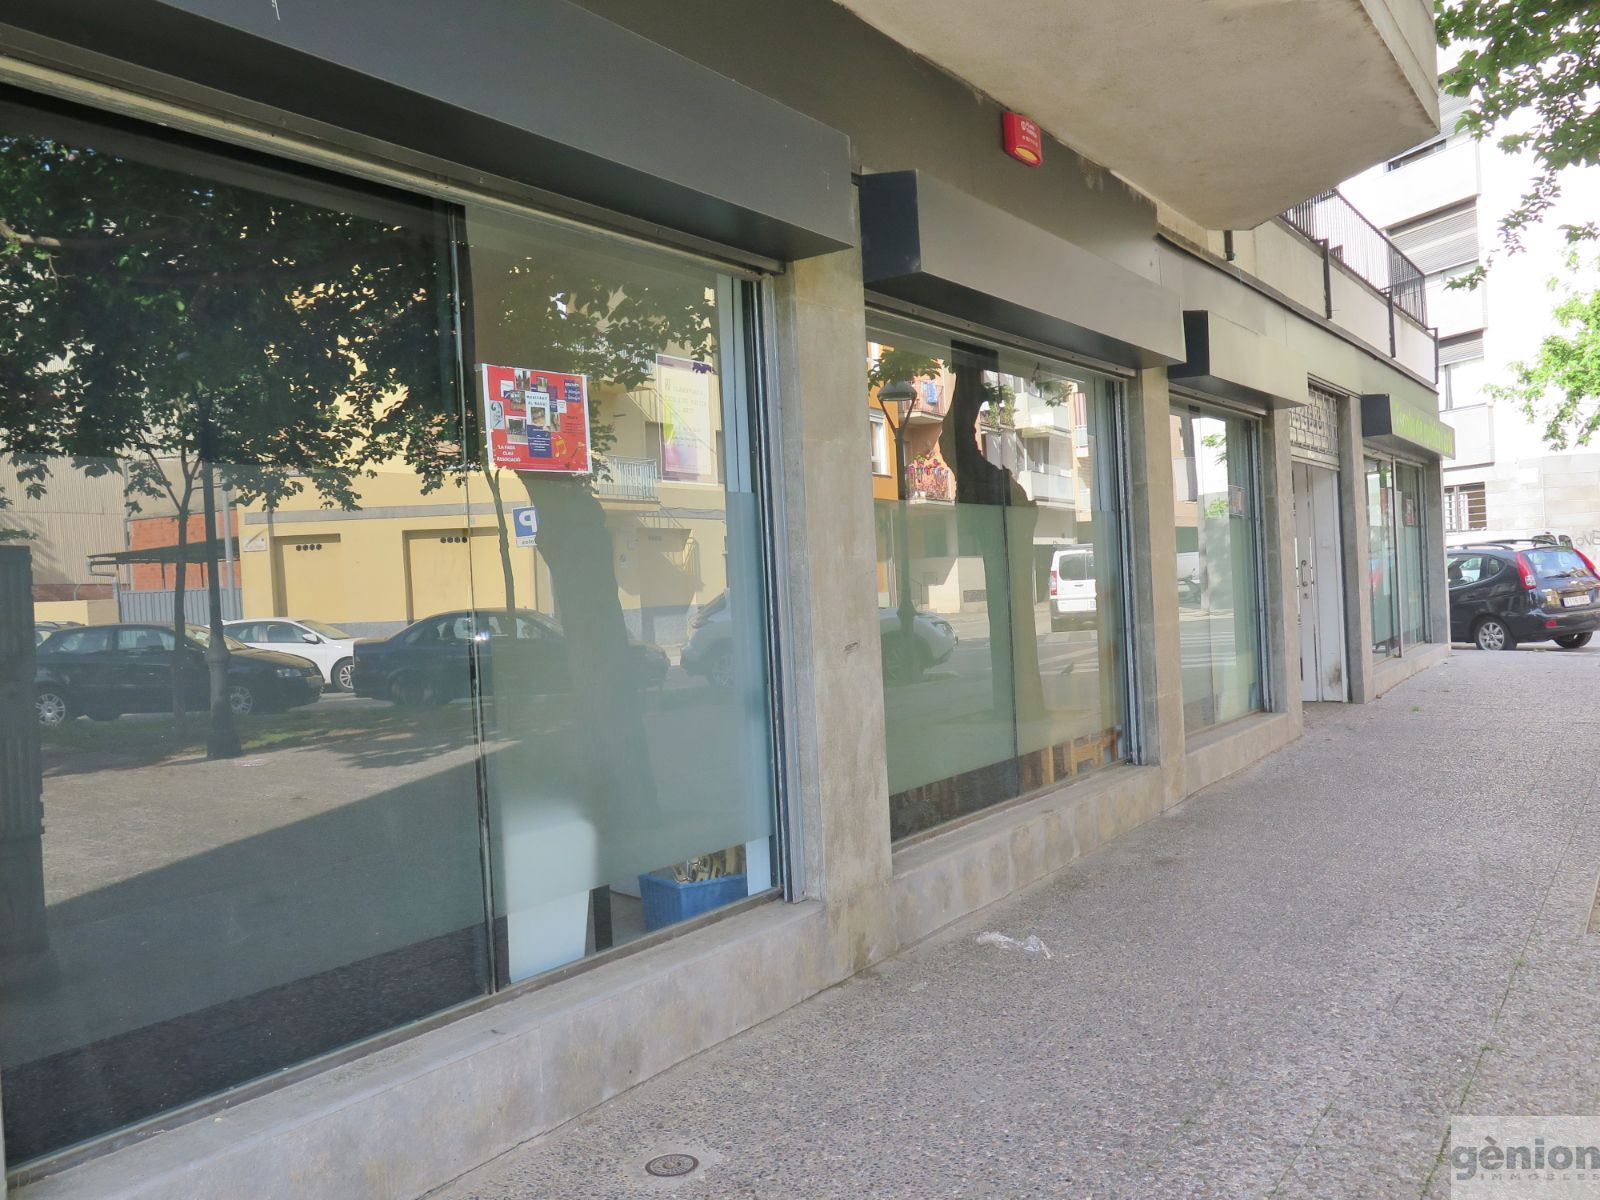 310 m² COMMERCIAL PREMISES (CORNER UNIT) IN CAN GIBERT DEL PLA, GIRONA